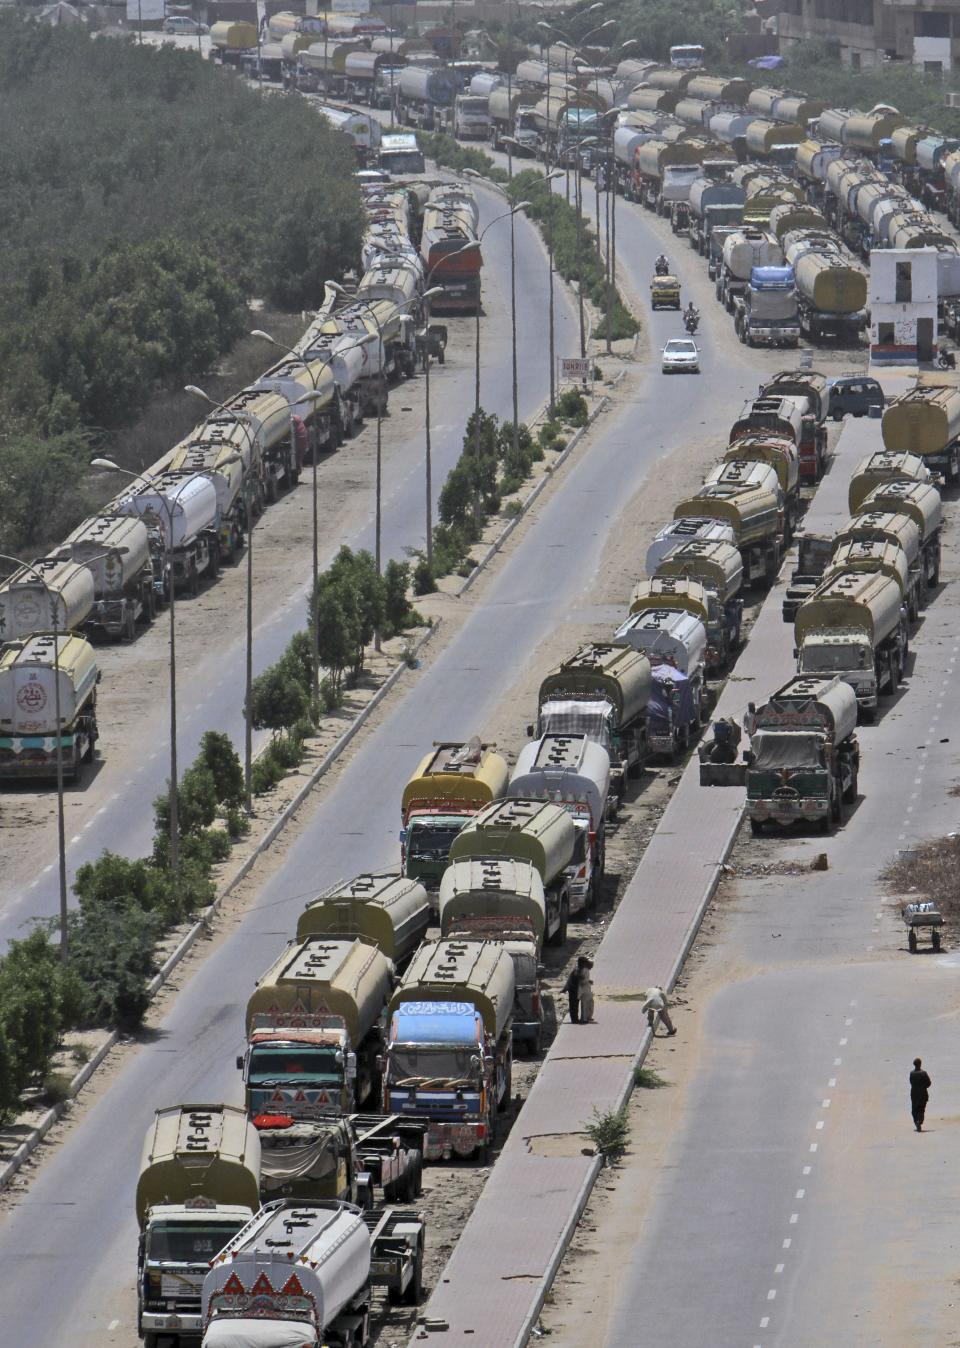 Oil tankers, which were used to transport NATO fuel supplies to Afghanistan, are parked in Karachi, Pakistan, Wednesday, May 23, 2012. (AP Photo/Fareed Khan)